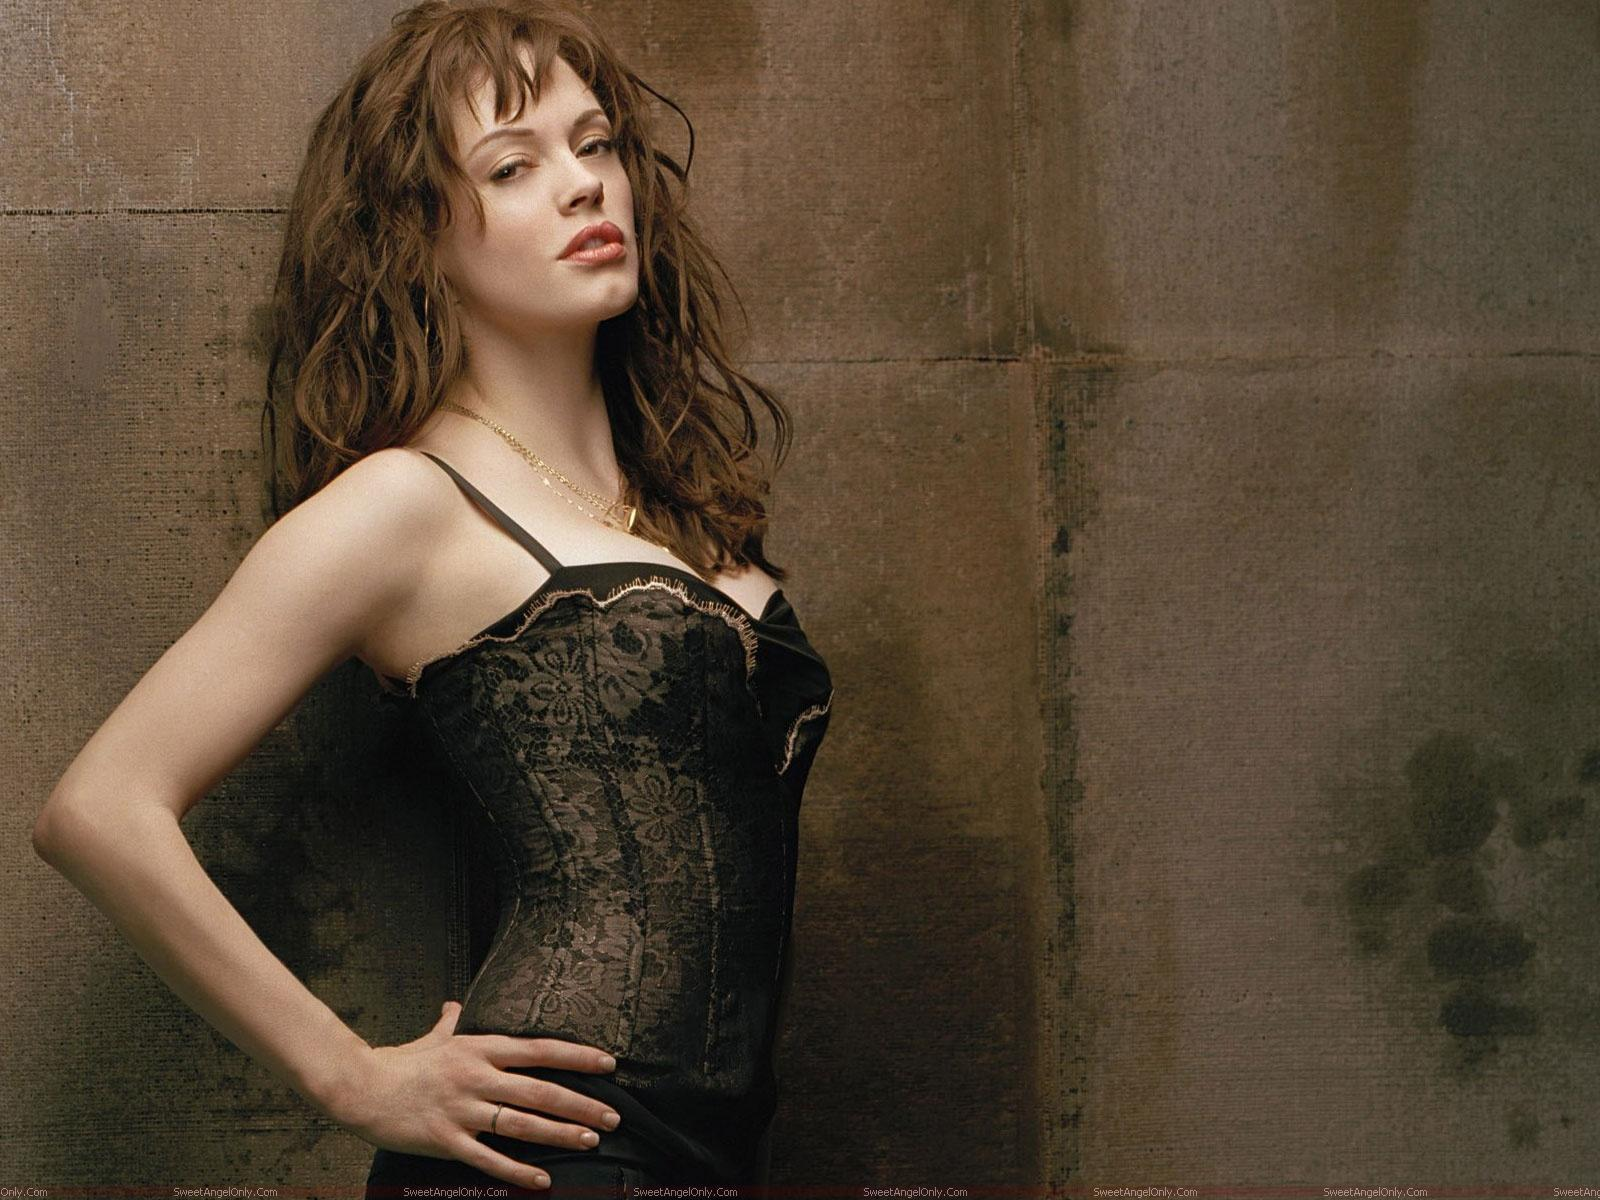 Hot Rose McGowan nudes (59 photos), Topless, Leaked, Instagram, braless 2015